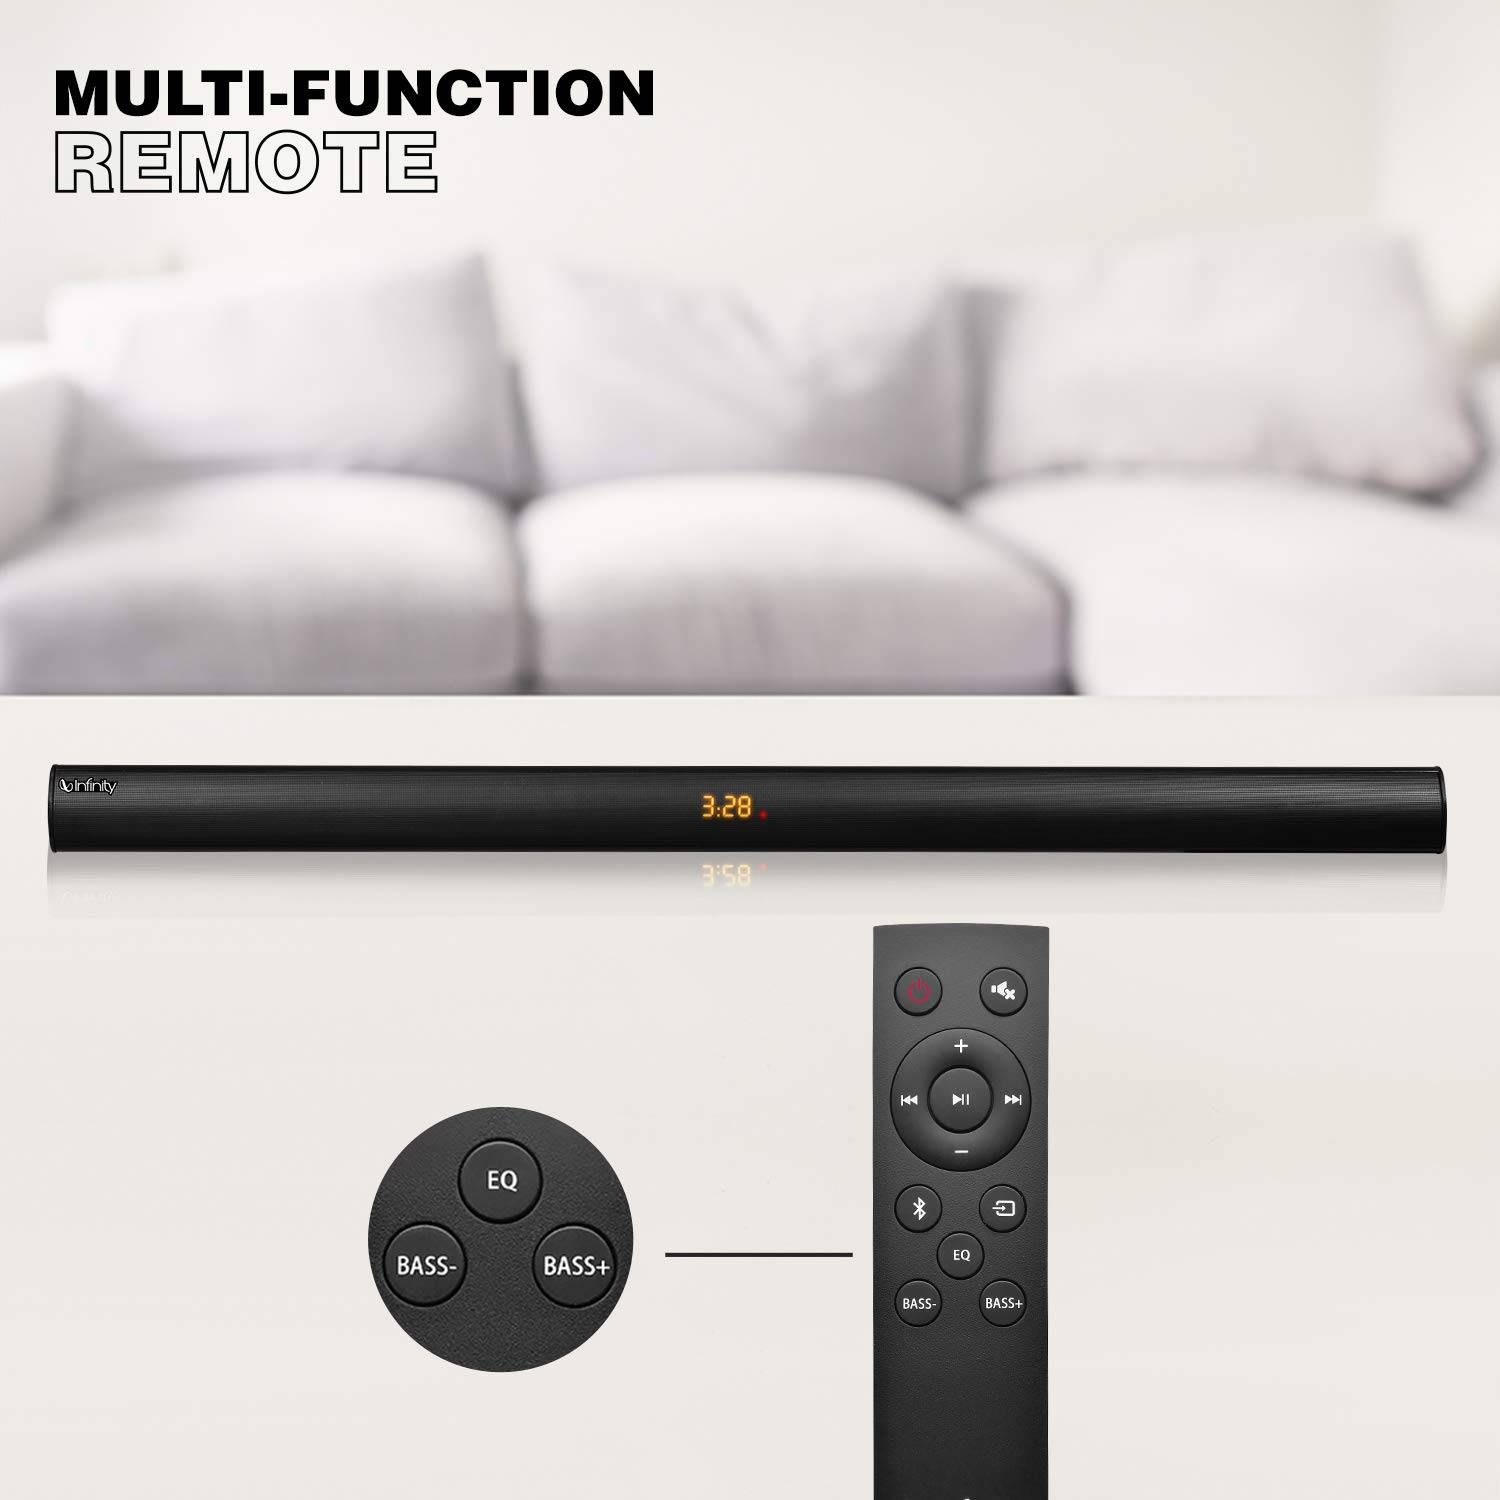 MULTI-FUNCTIONAL REMOTE